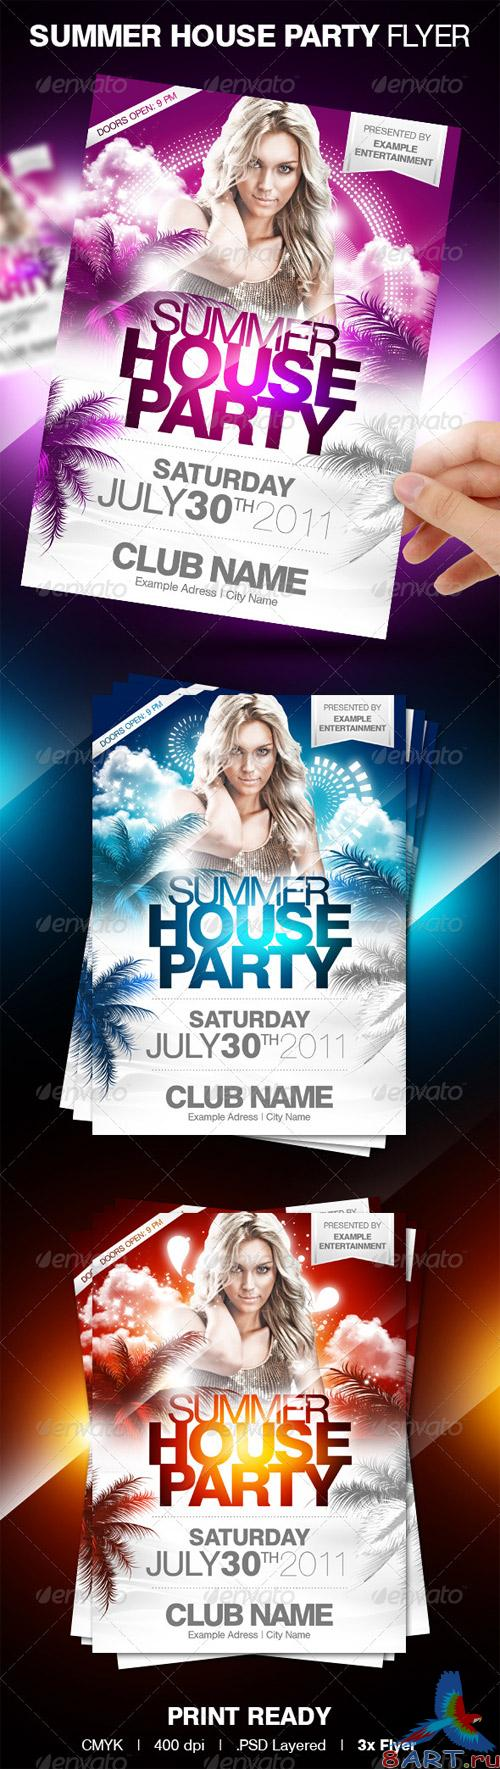 Summer House Party Flyer - GraphicRiver